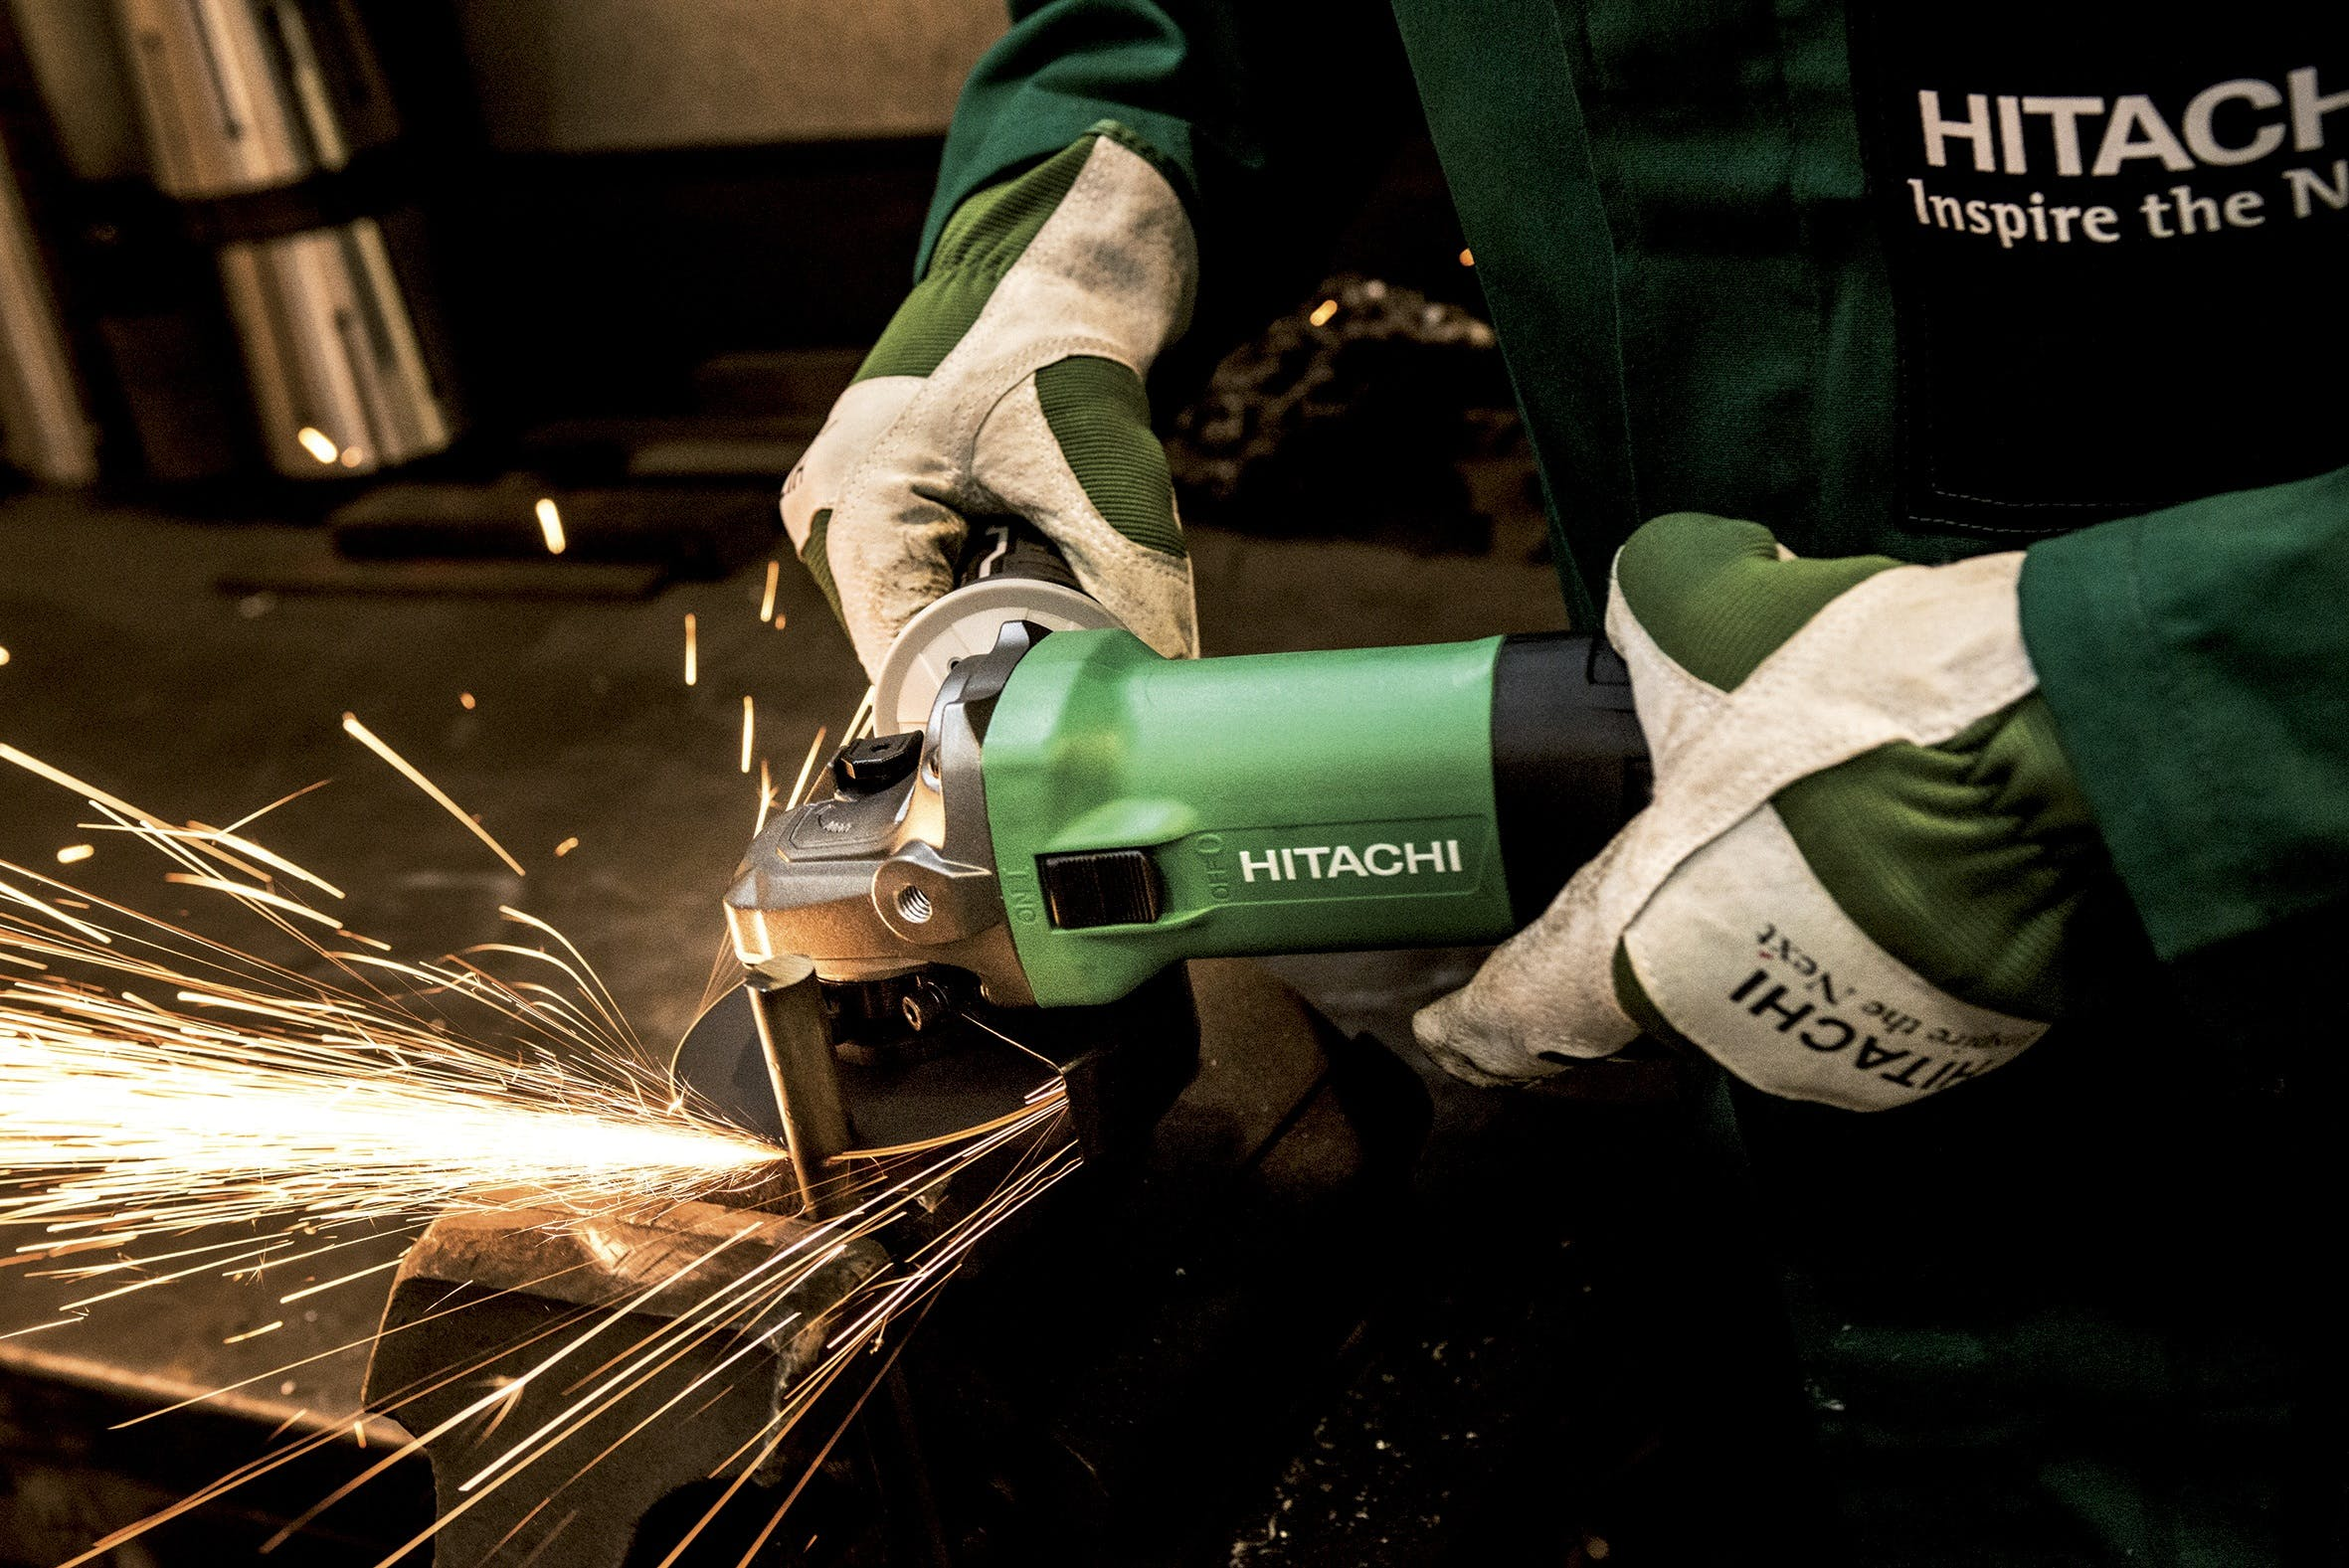 Person Operating Hitachi Angle Grinder